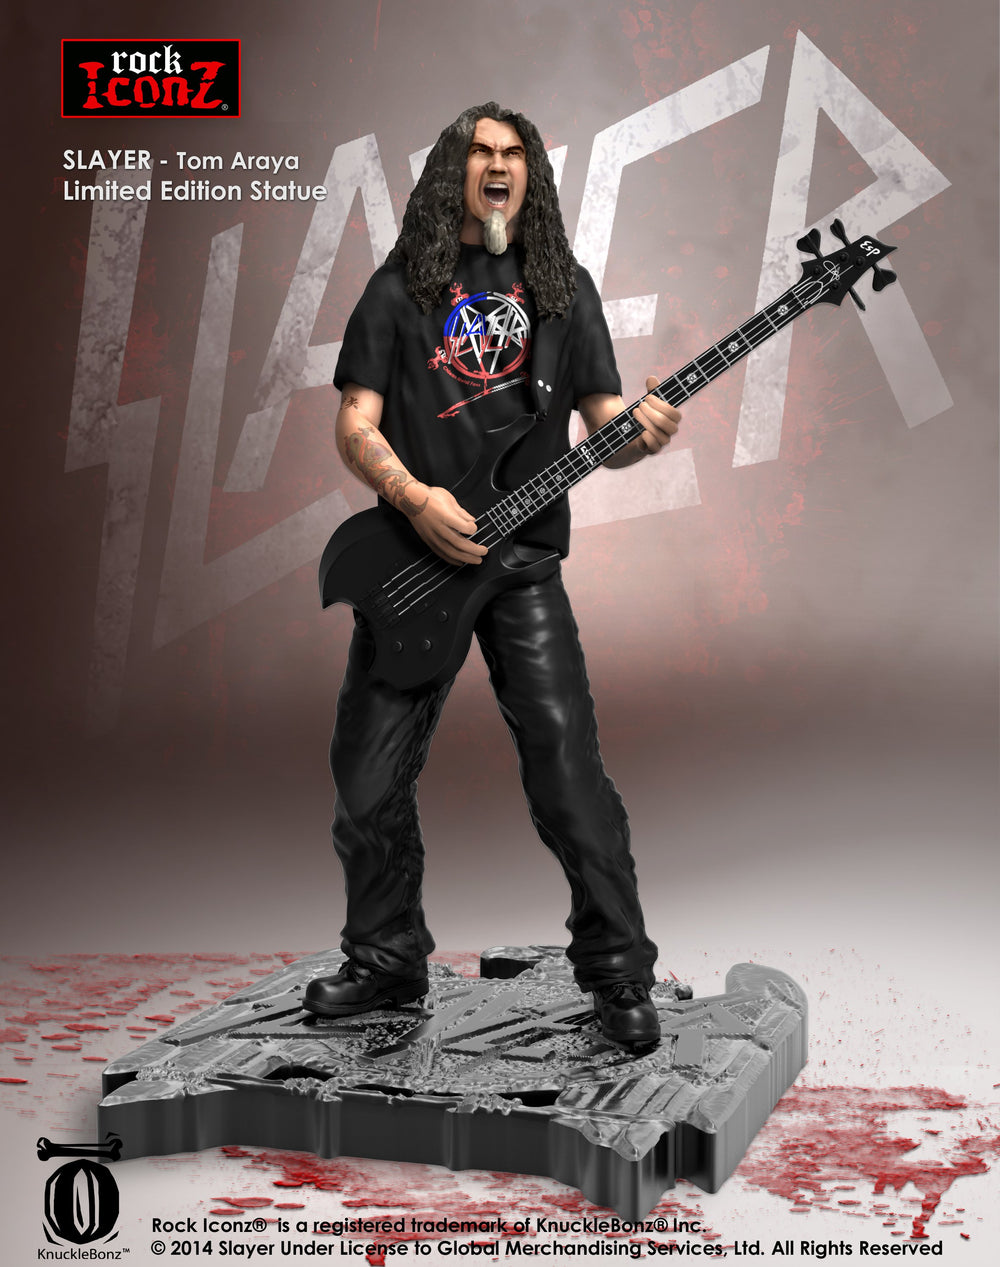 Slayer Collectible 2014 Knucklebonz Rock Iconz Limited Edition Tom Araya Statue #367/1000